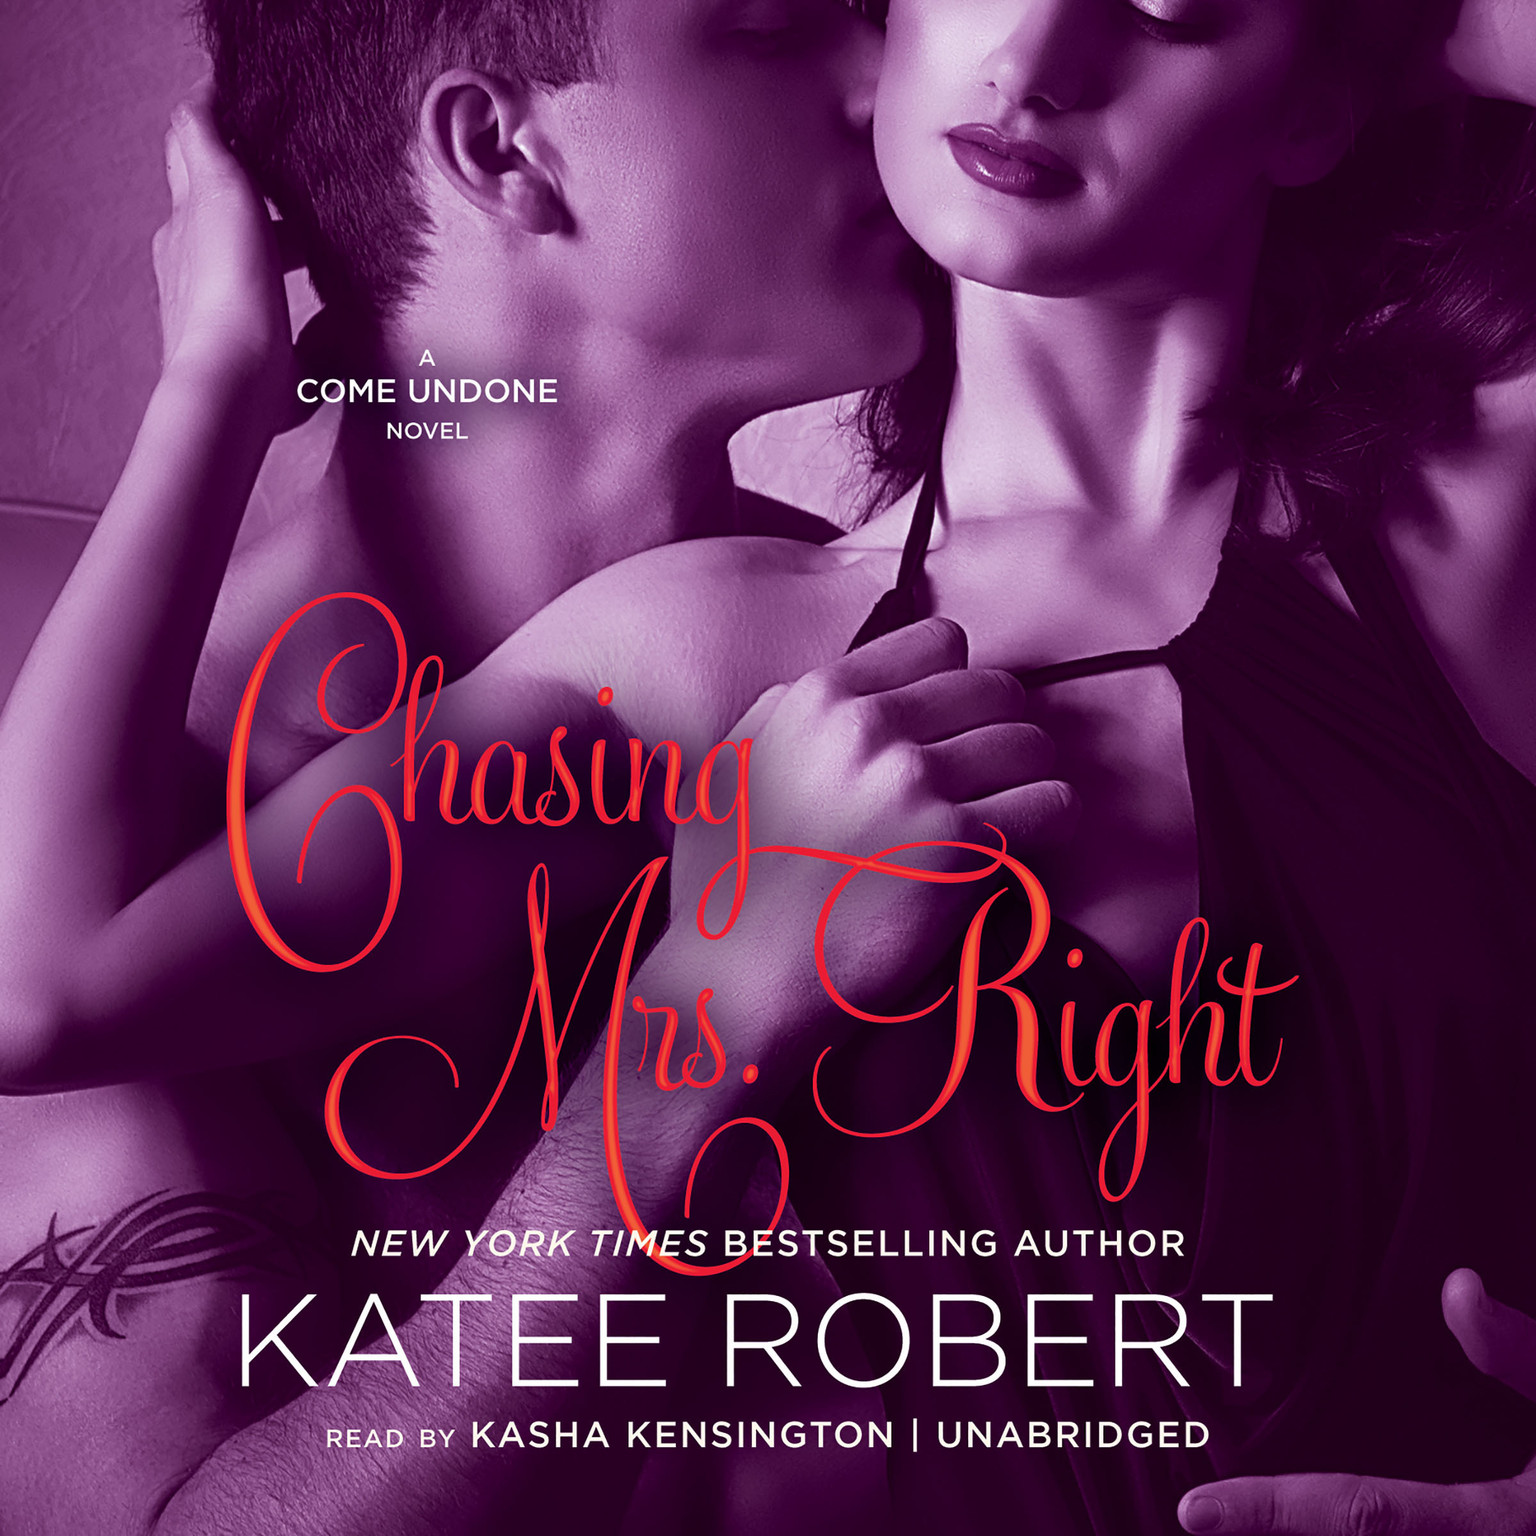 Printable Chasing Mrs. Right: A Come Undone Novel Audiobook Cover Art